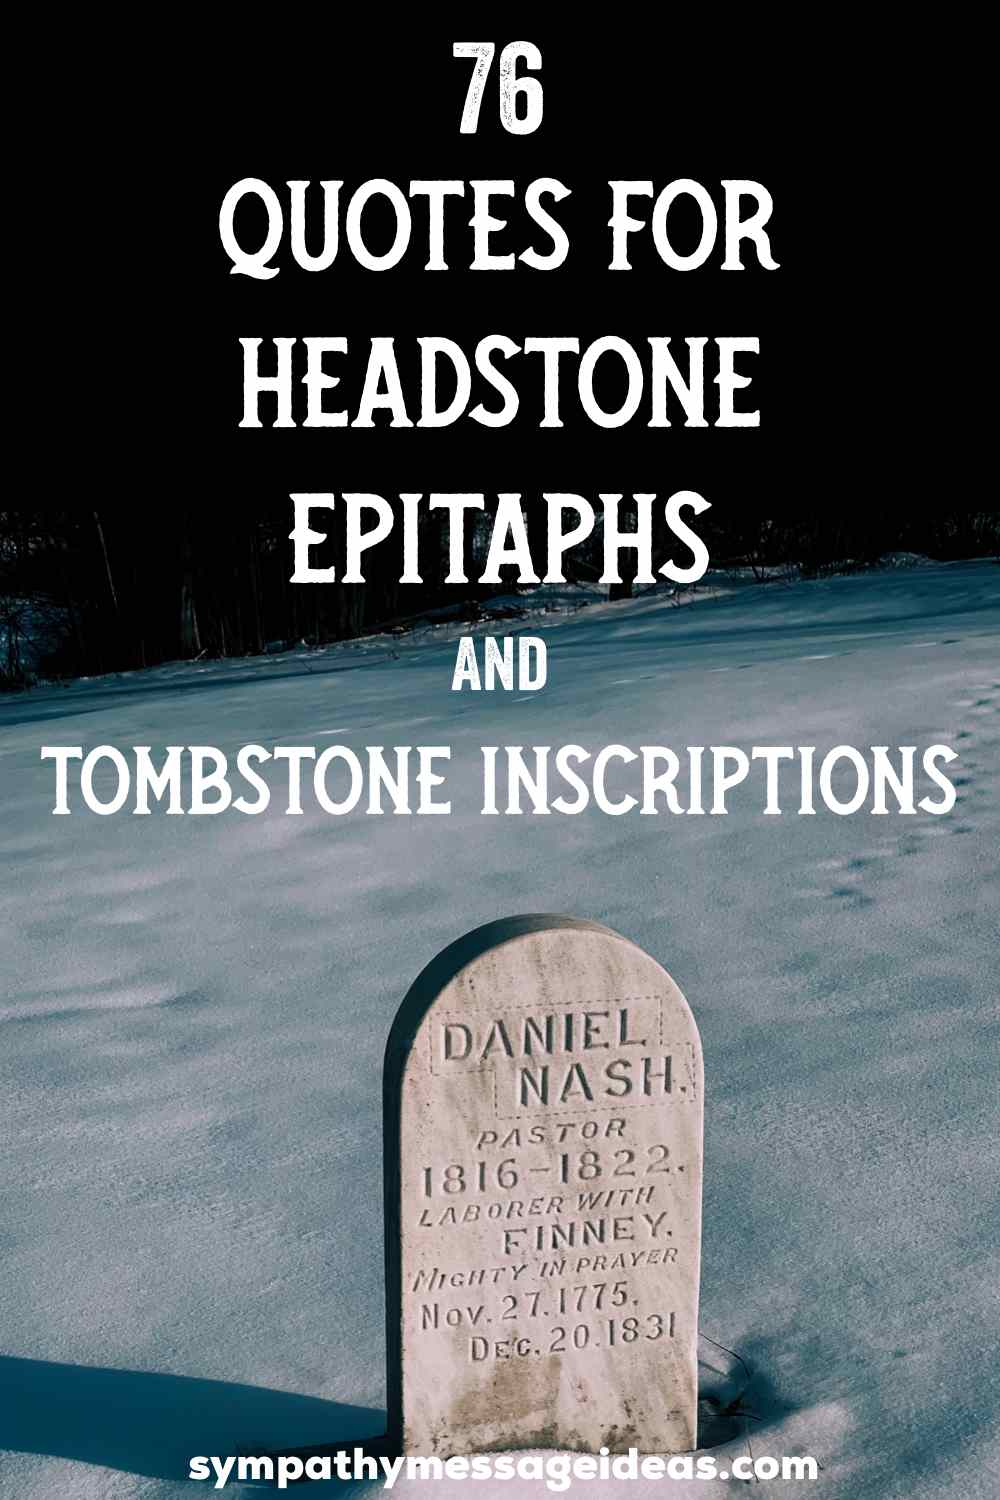 Quotes for headstone epitaphs and tombstone inscriptions